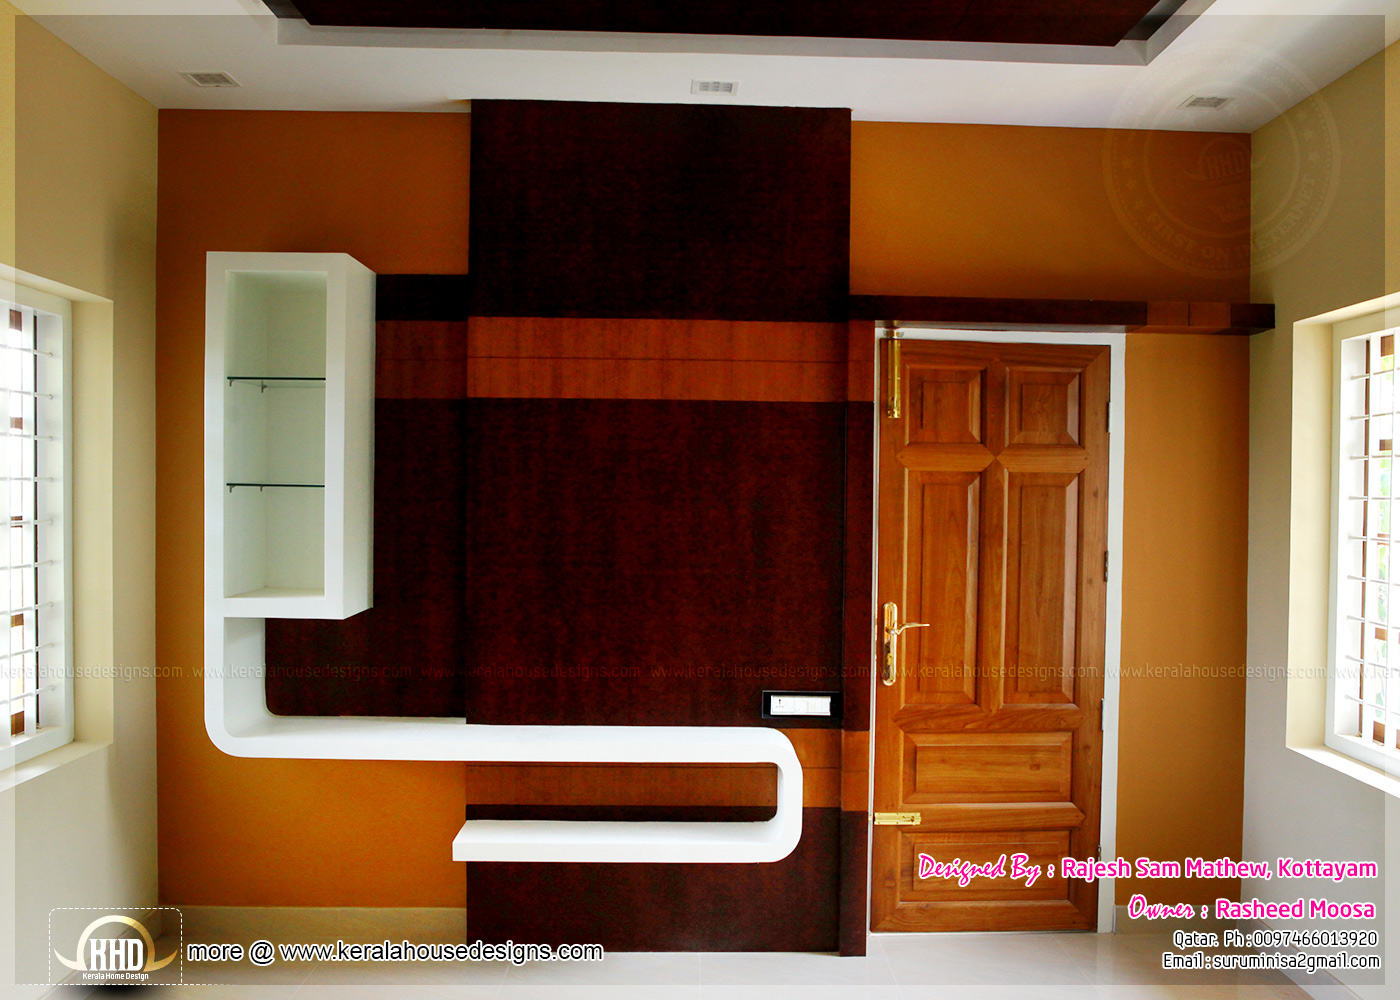 Kerala interior design with photos kerala home design for Interior design ideas for hall